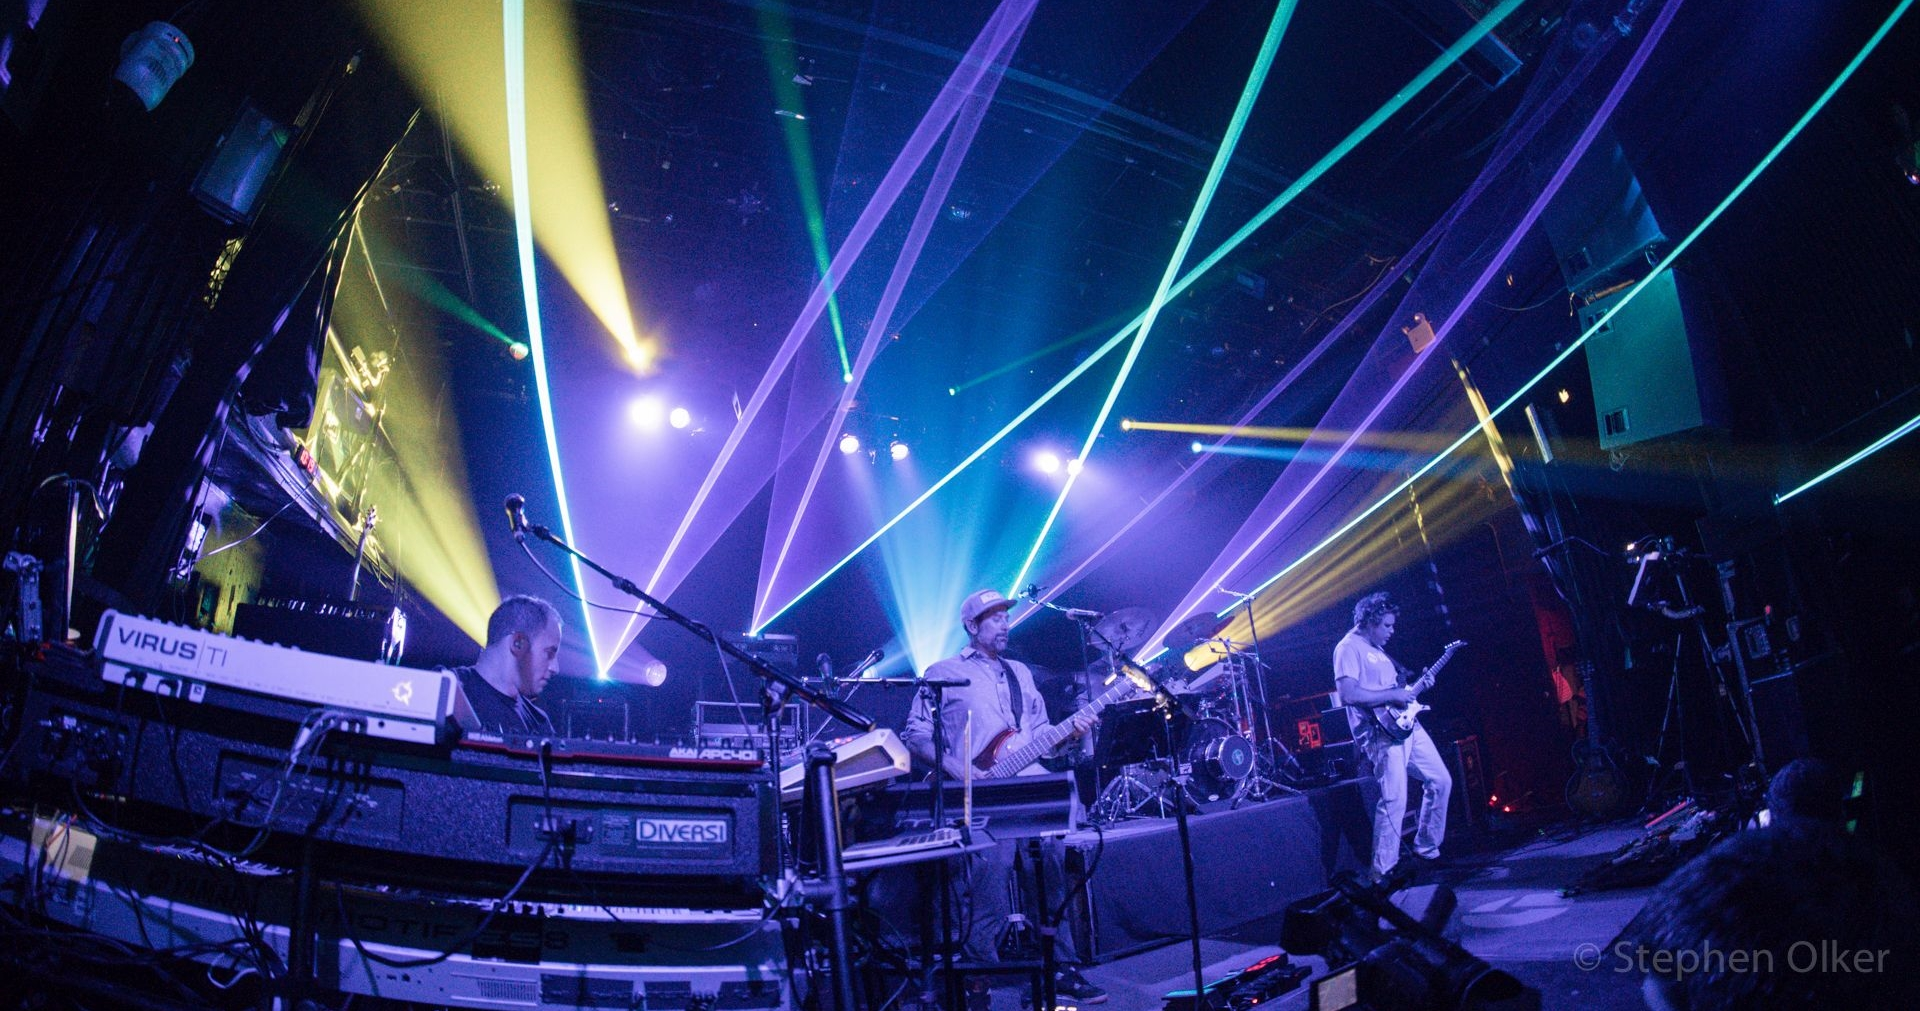 Disco biscuits december 27 celebrity